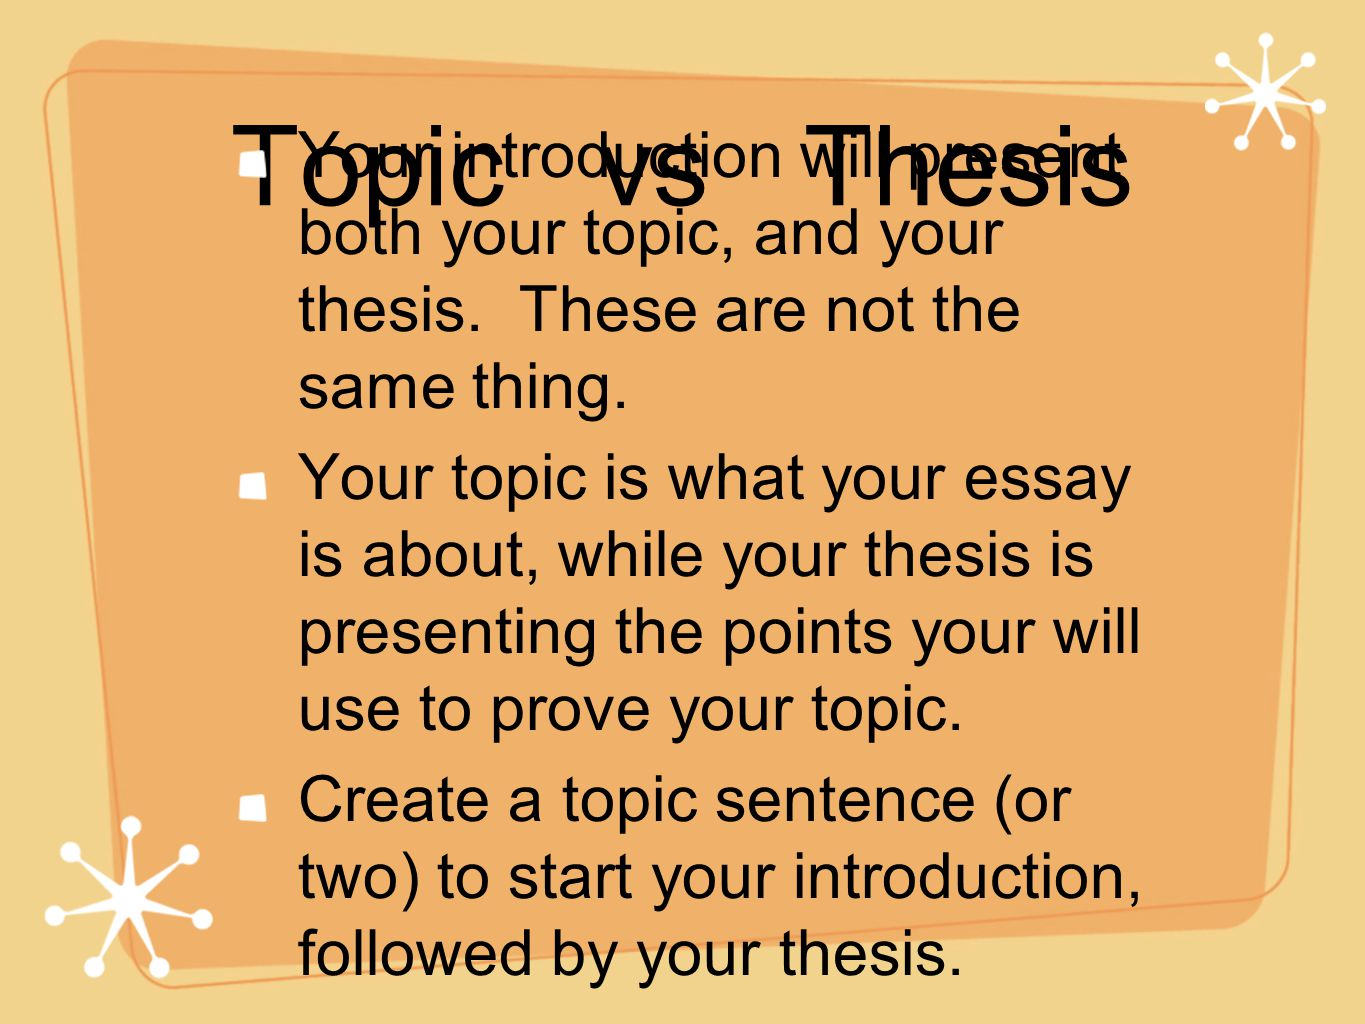 What is introduction in thesis writing